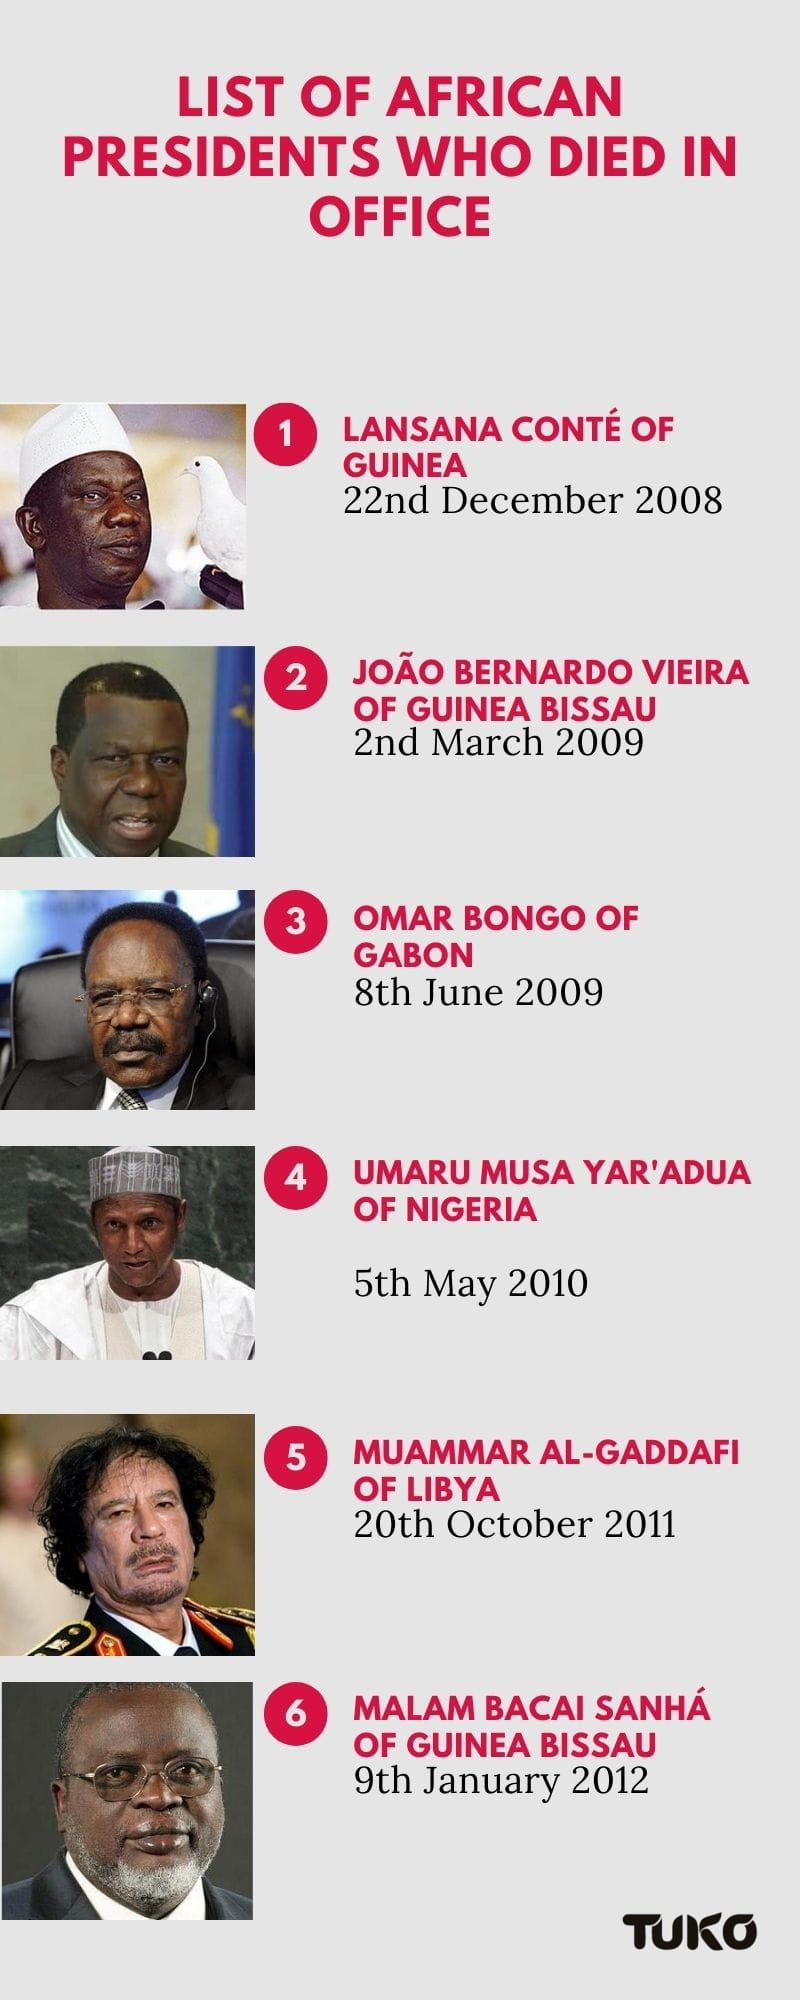 African presidents who died in office